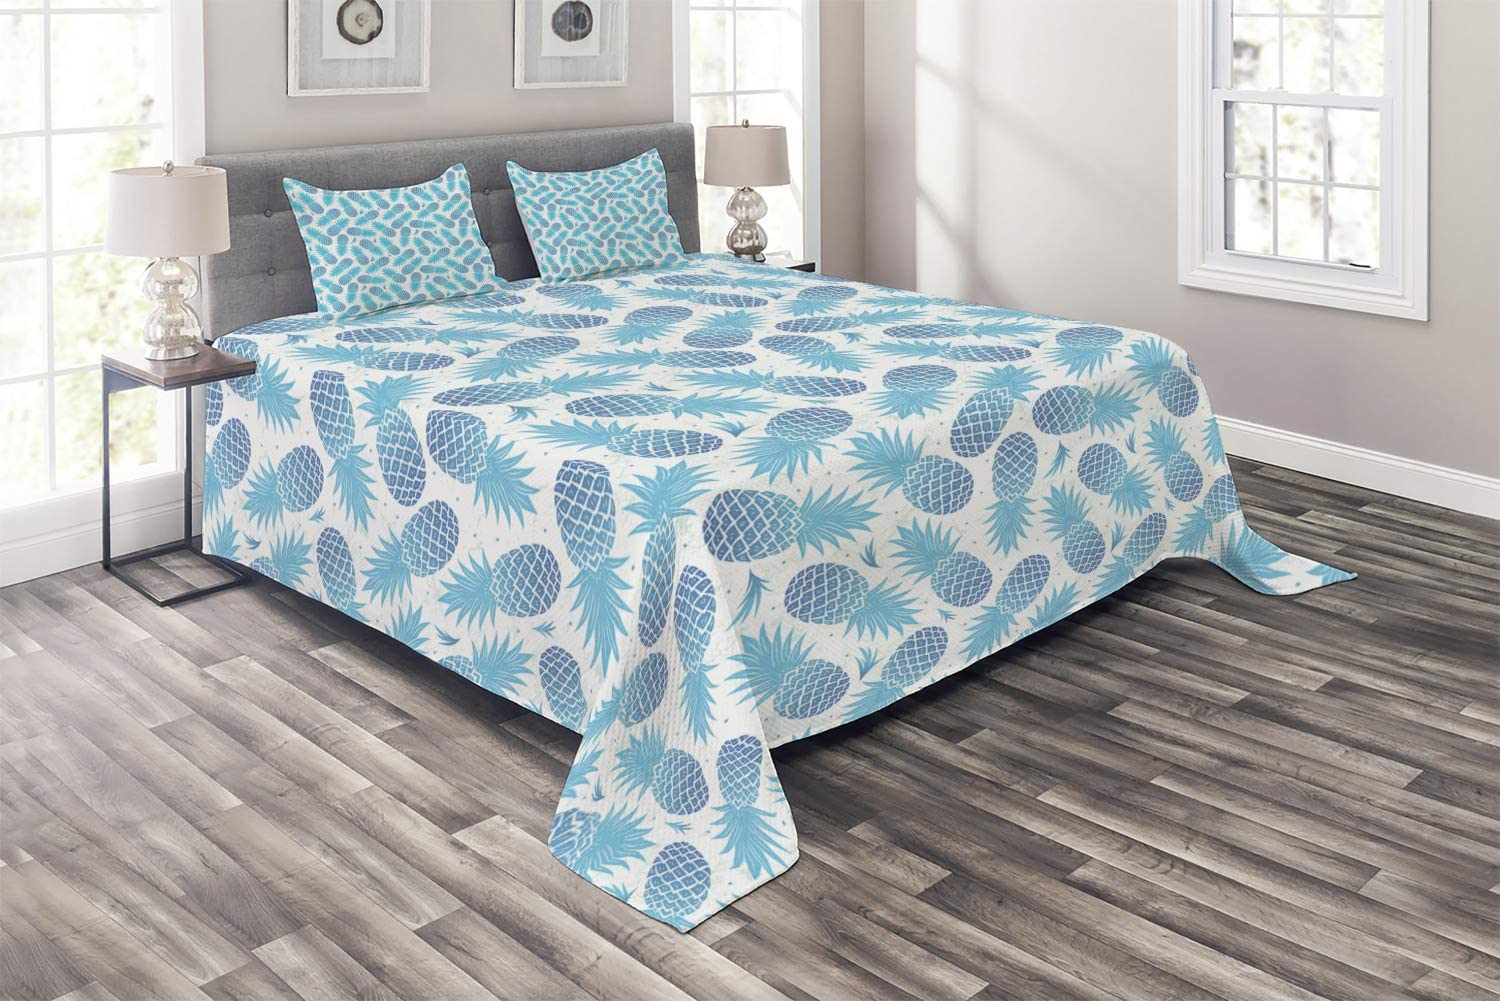 In stock Ambesonne Pineapple Coverlet Foliage Silhouettes Fruits Exotic Topics on TV